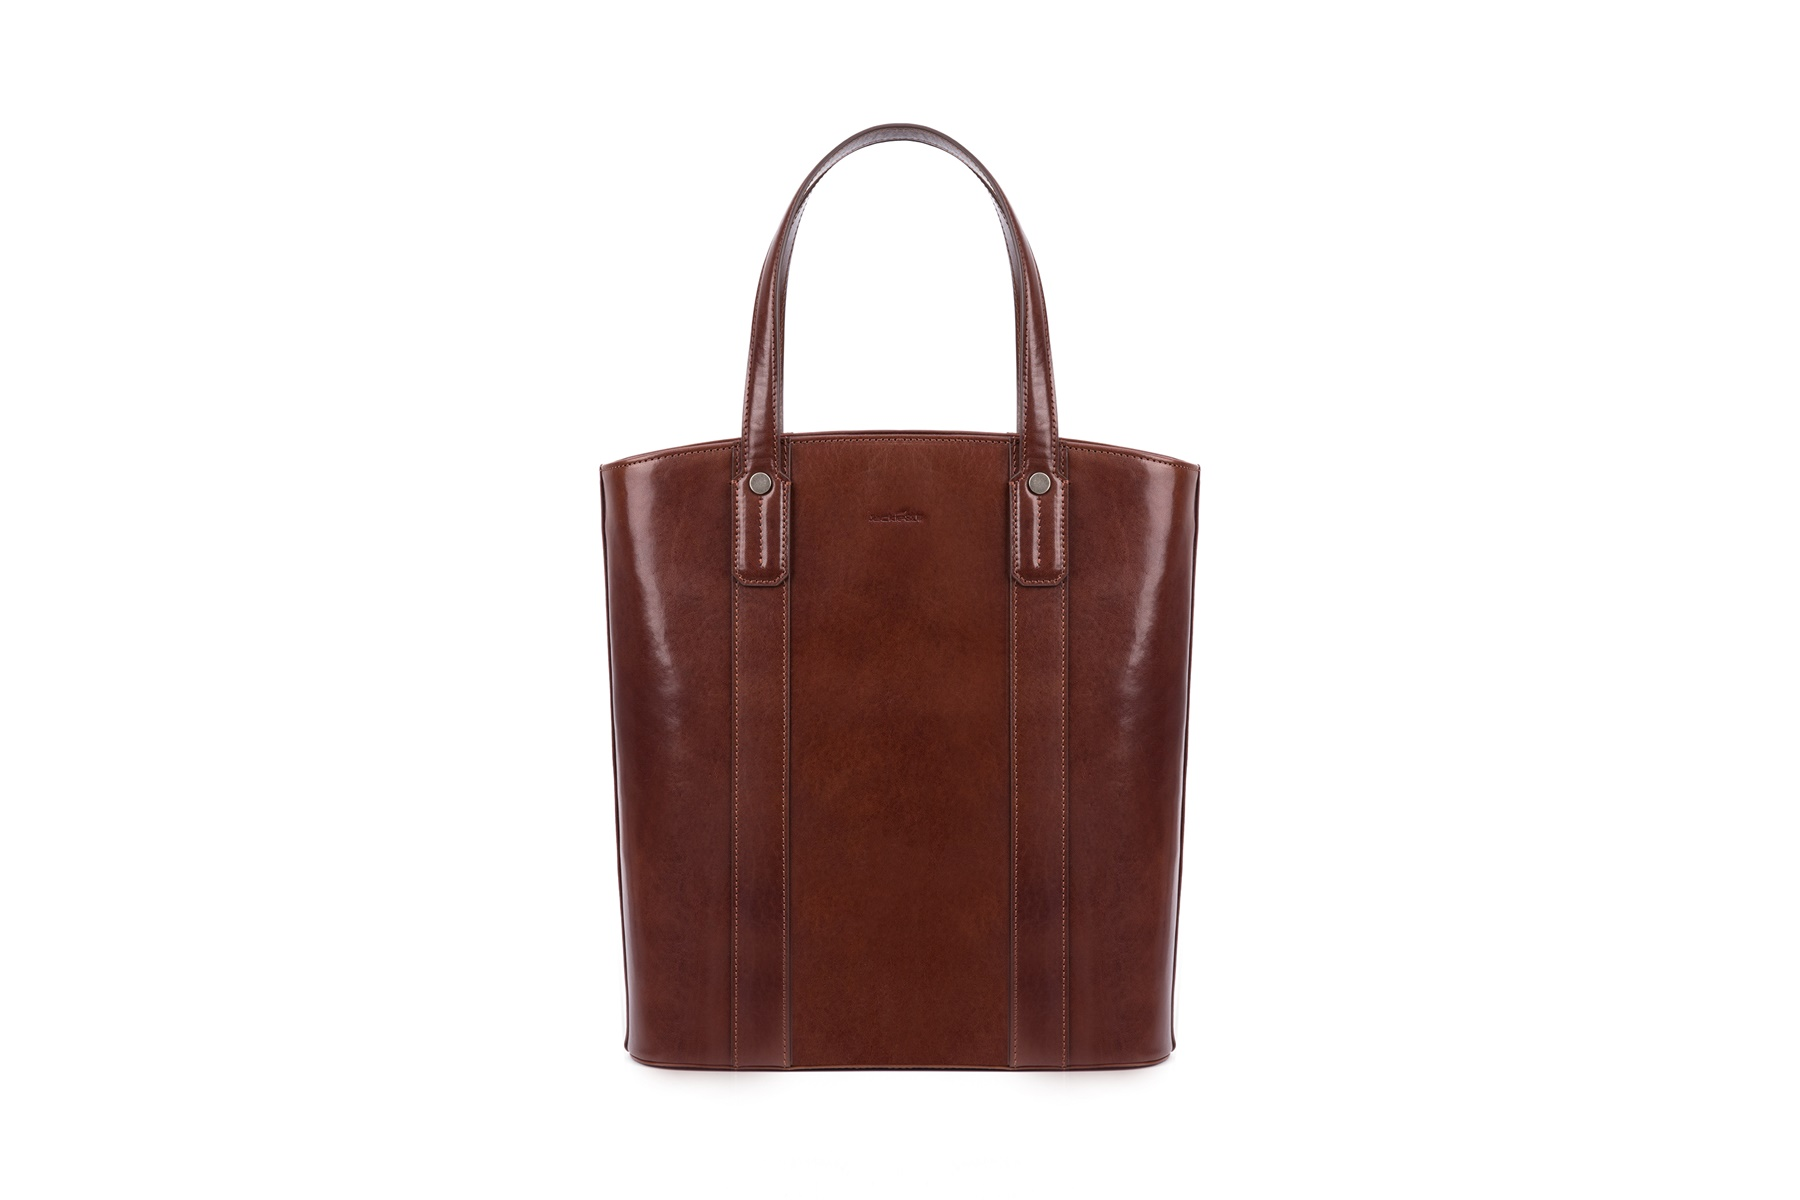 GF bags-Womens Work Tote Tote Leather Handle With Zipper Closure-1